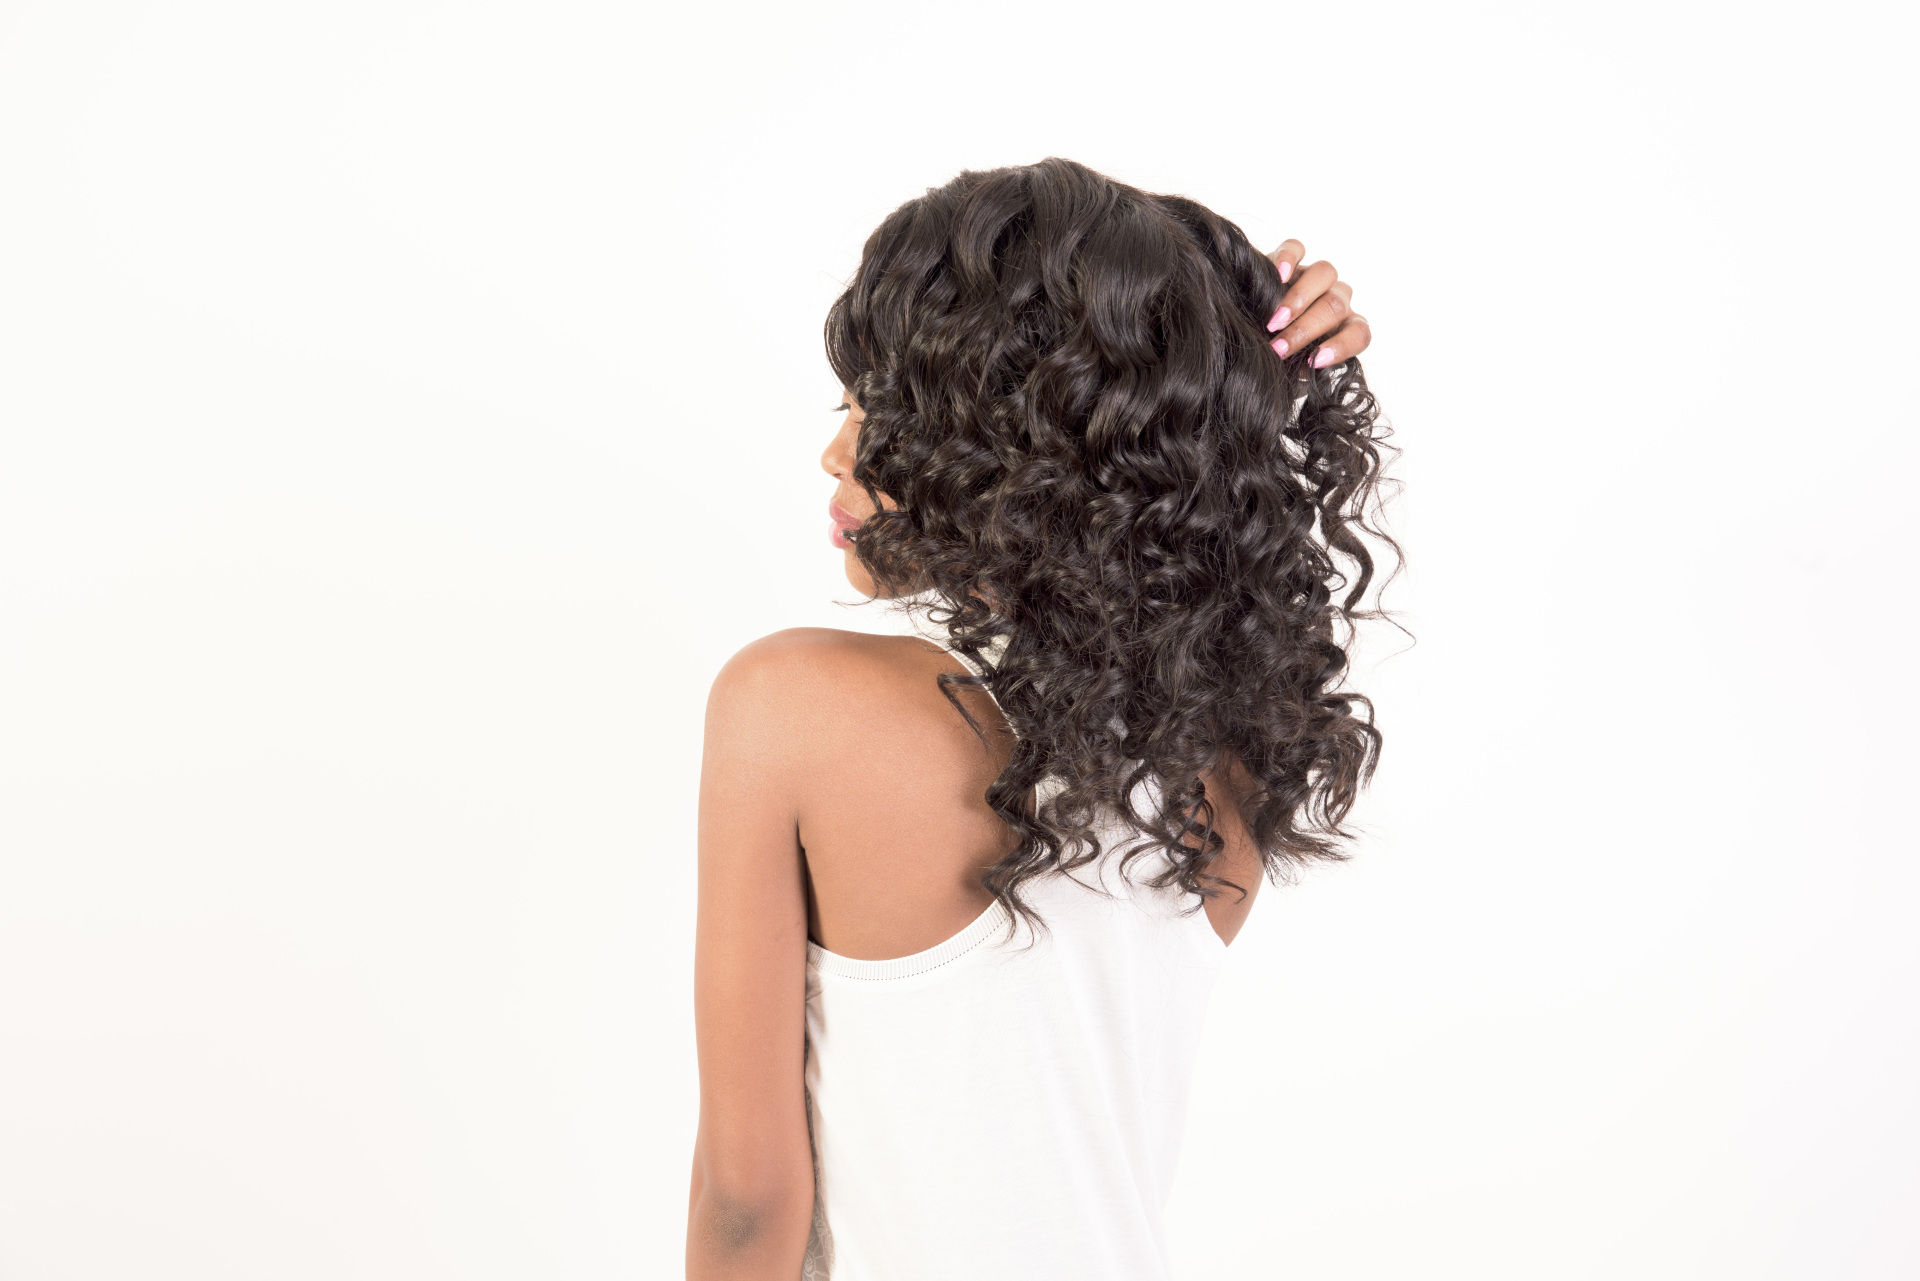 Kayla Gaskin Backshot - Extensions Suite